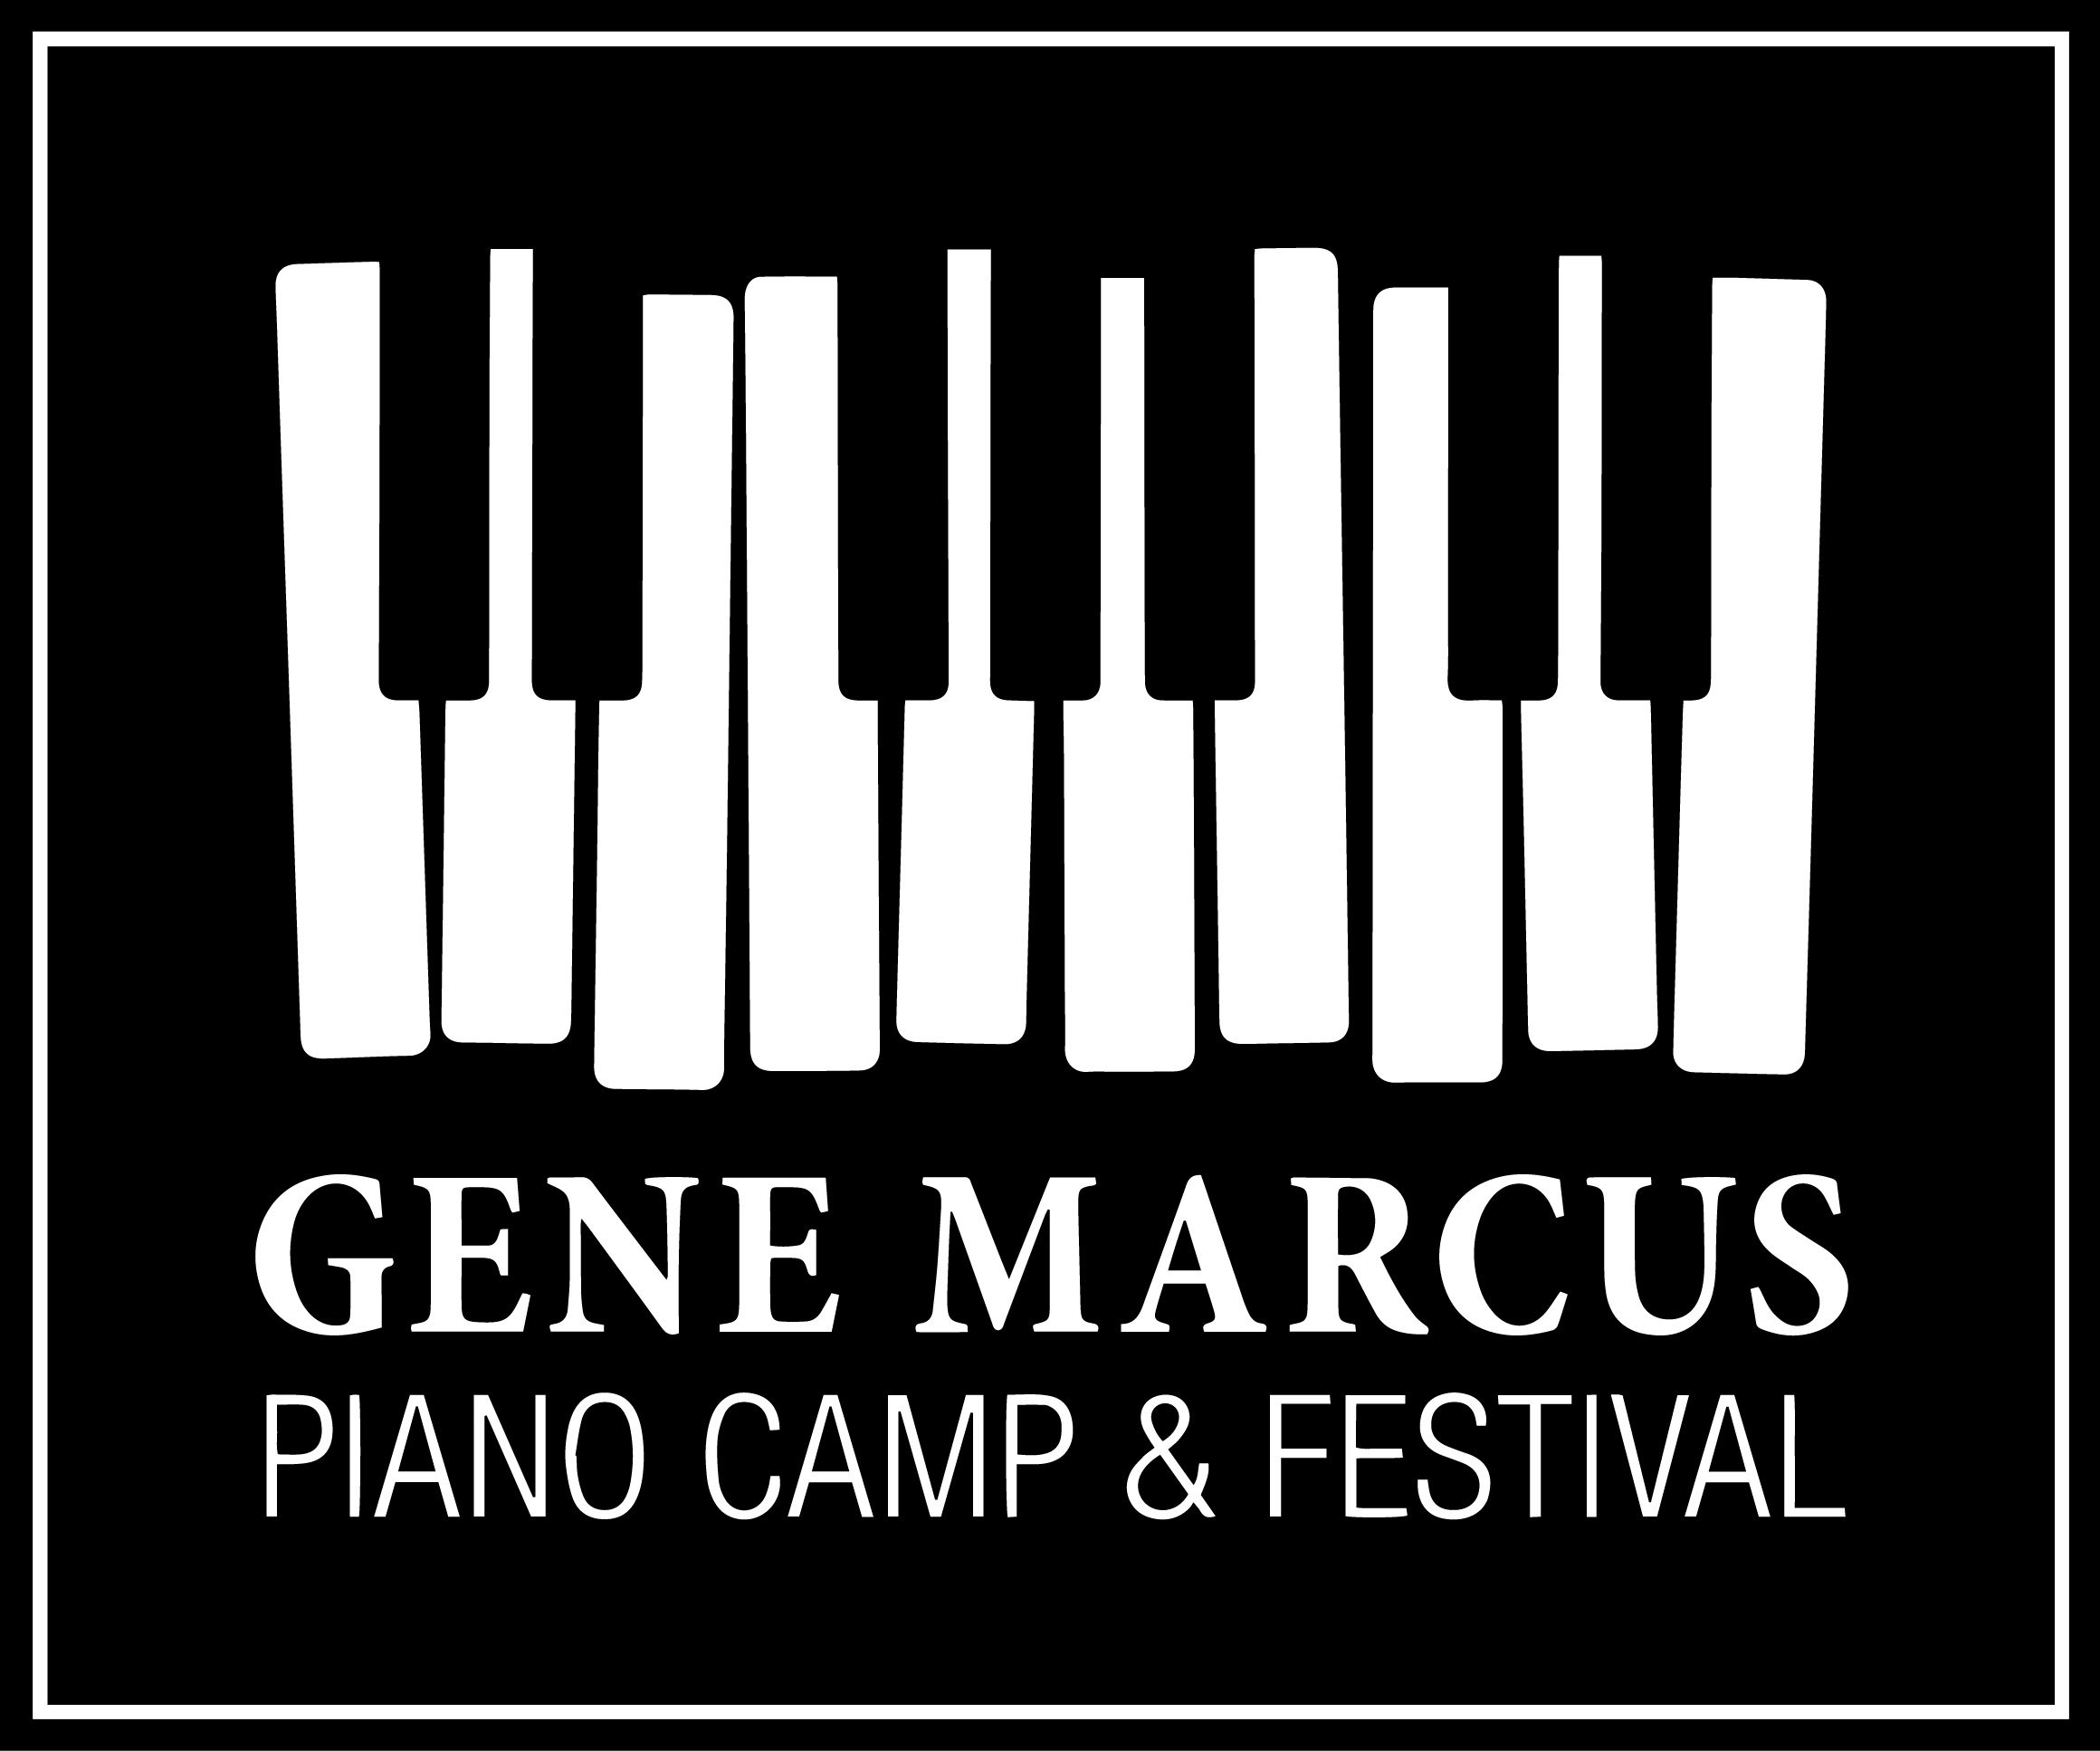 GM-CampFestival-Mark 2018